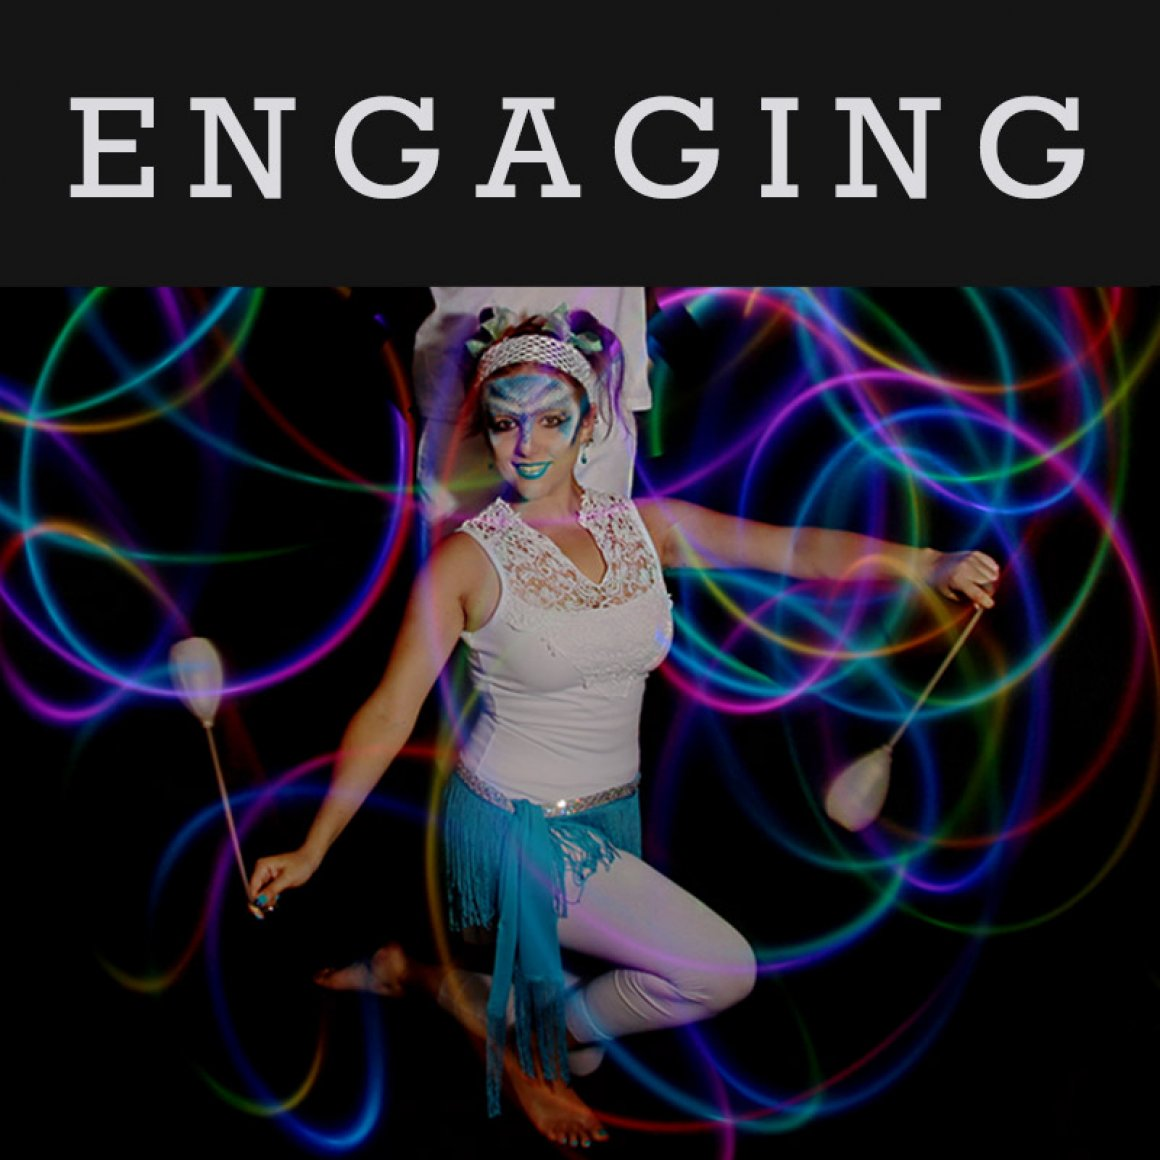 ENGAGING_new